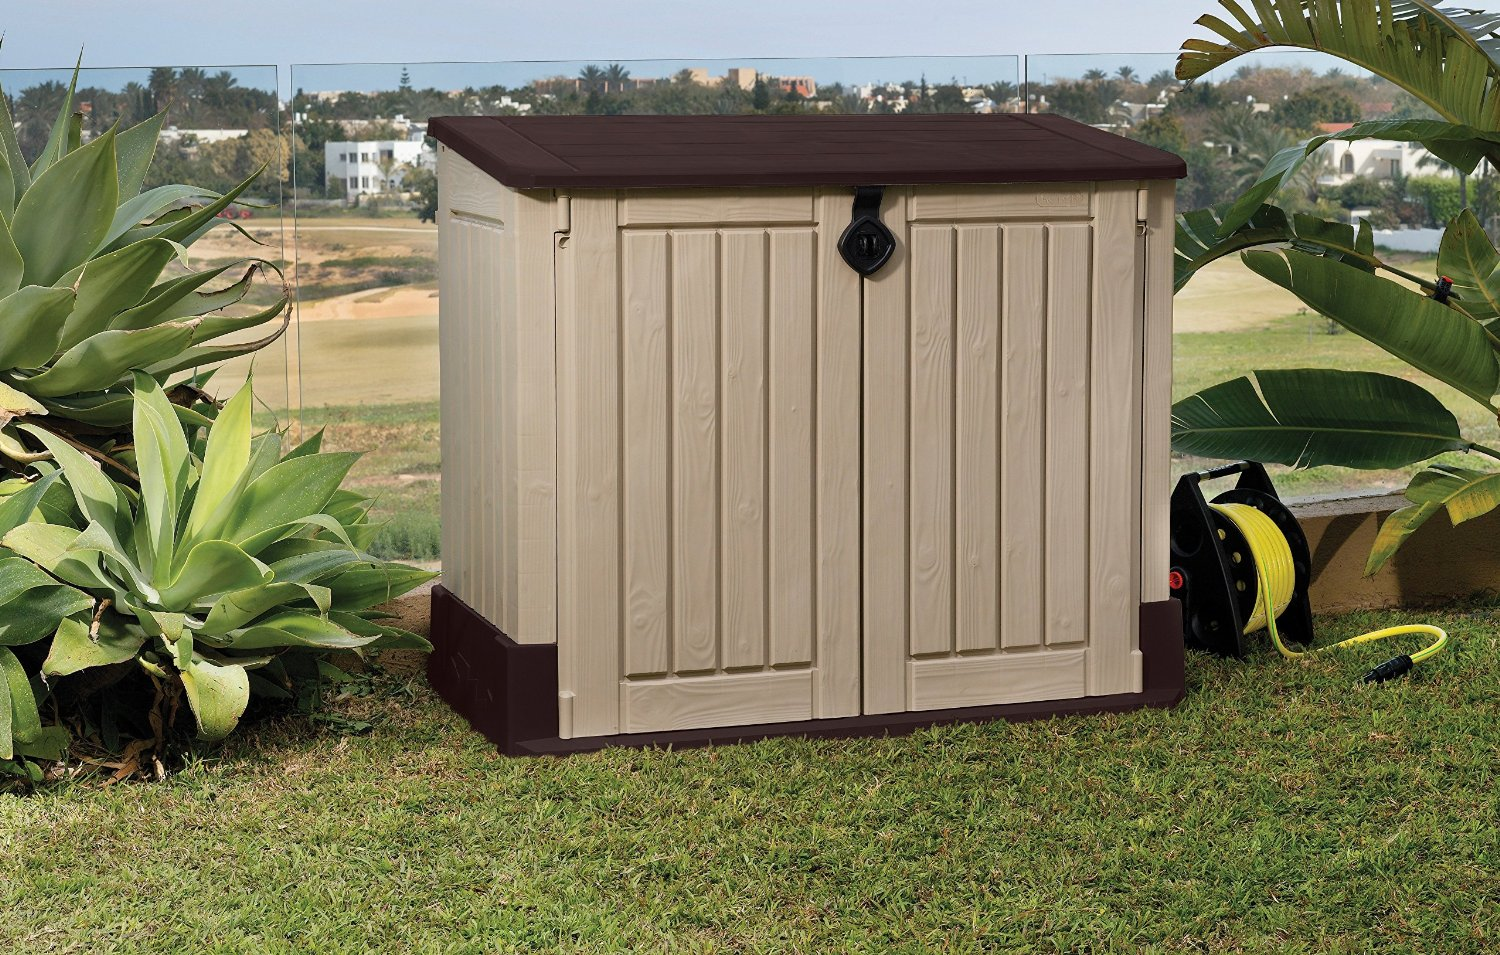 Keter Store-It-Out Midi Resin Outdoor Garden Storage Shed - Beige/Brown